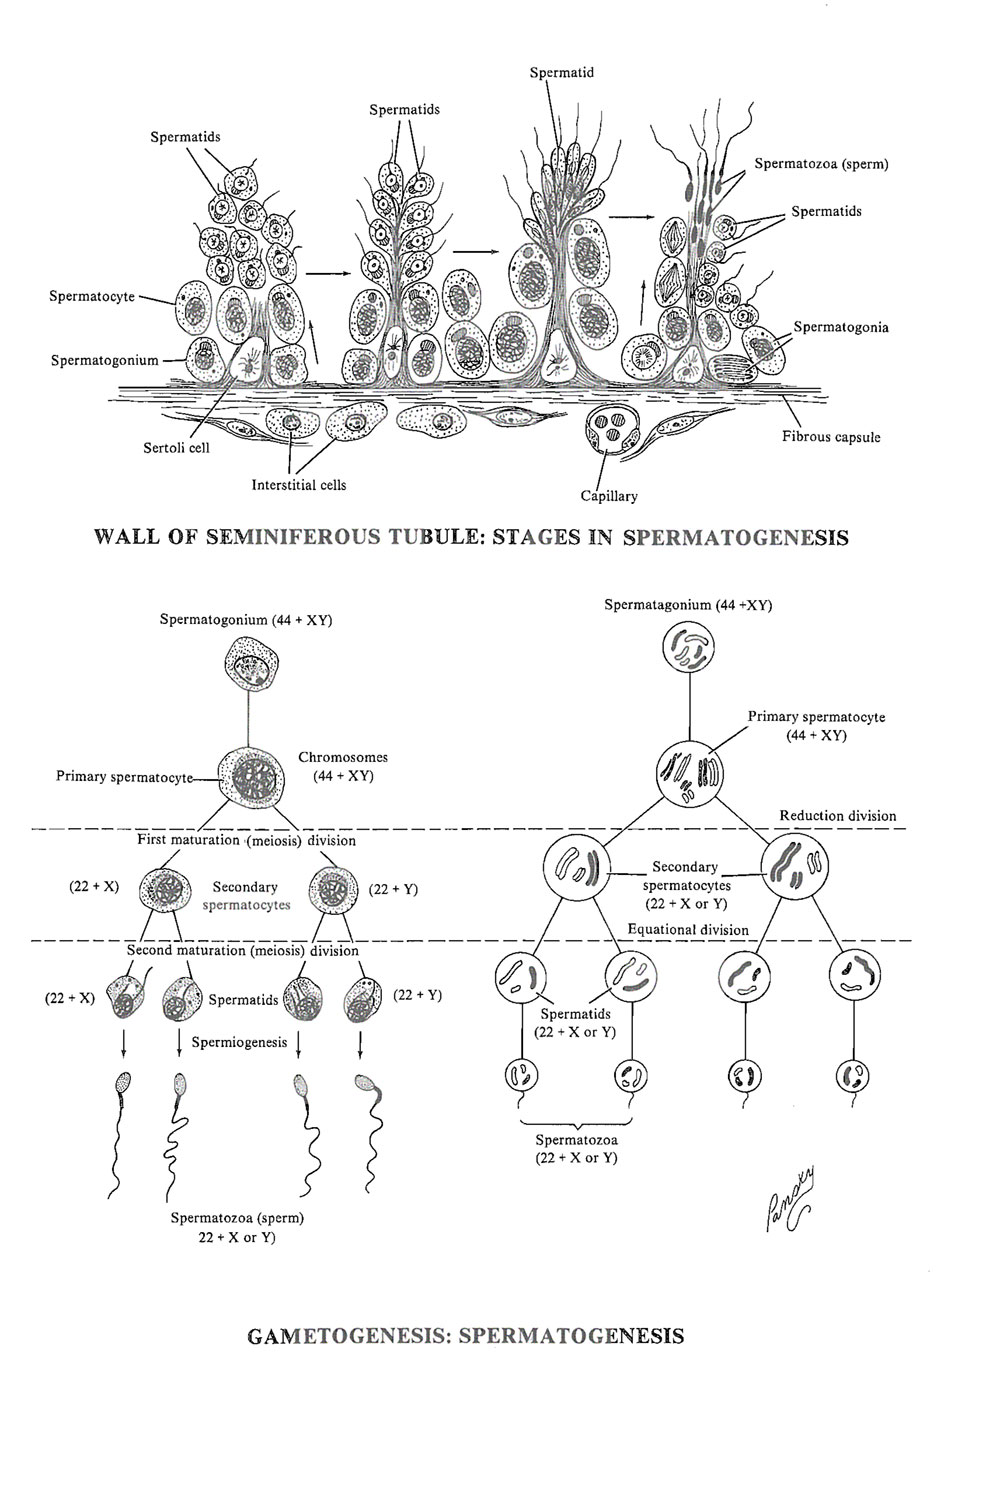 gamete (germ cell) formation, or gametogenesis: spermatogenesis